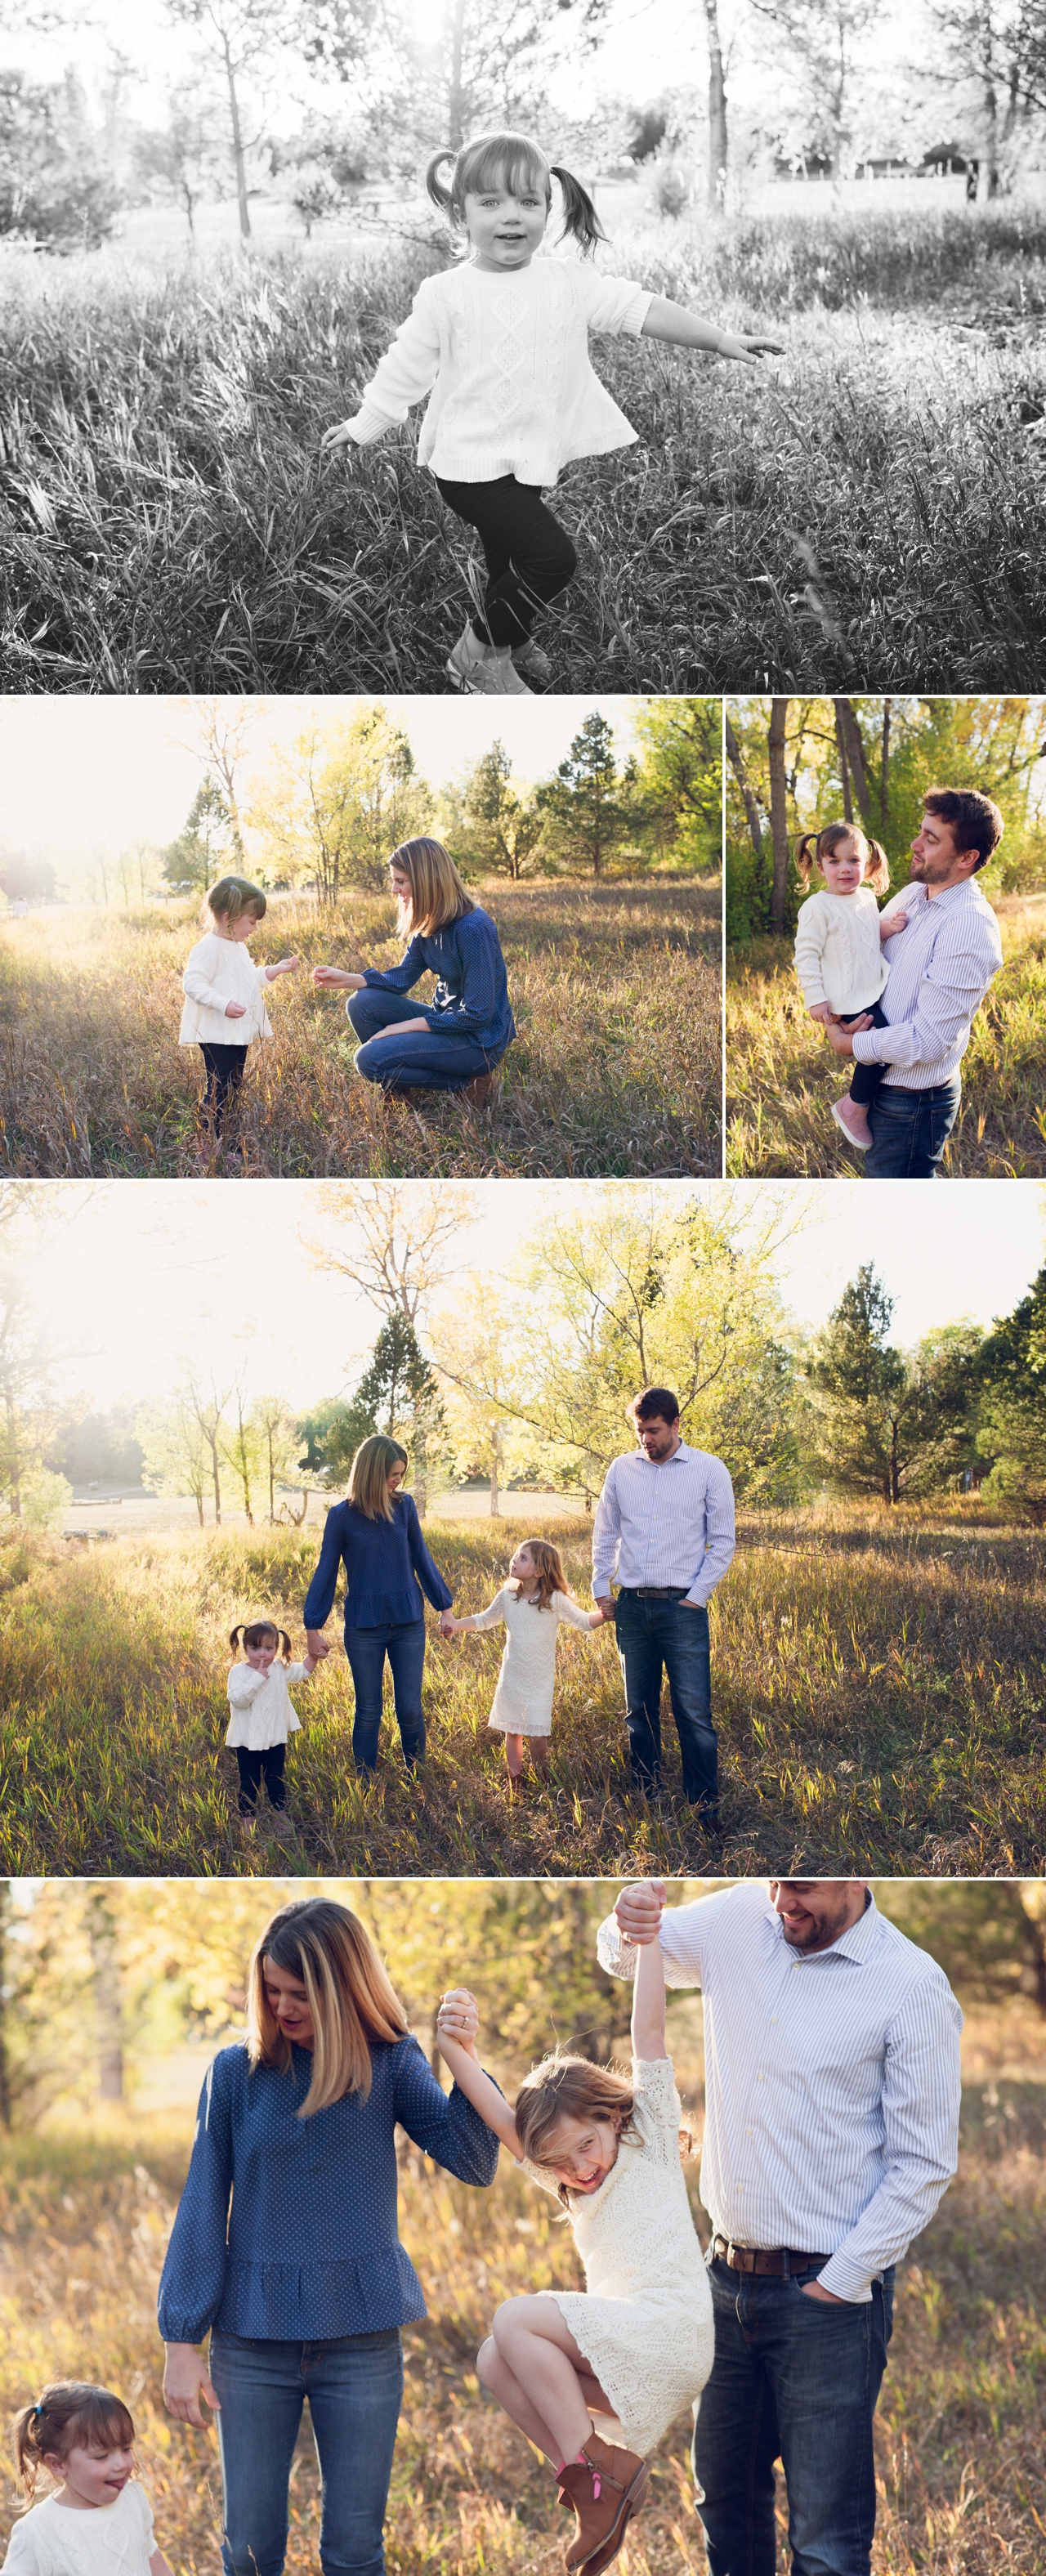 R Family Denver photographer for families 1.jpg